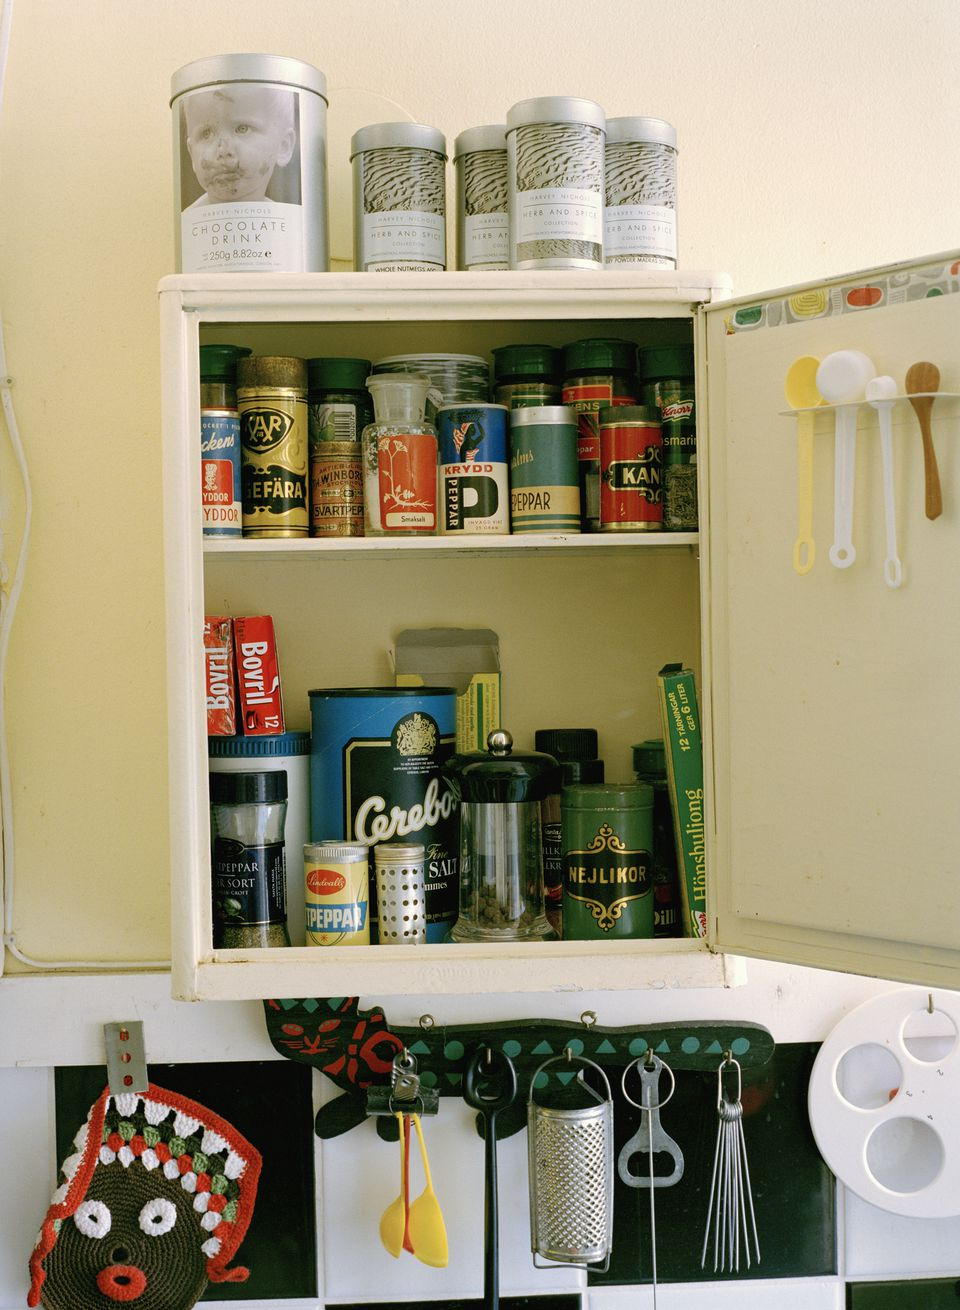 Organize Kitchen Cabinets. Declutter Your Kitchen Cabinets Organize your